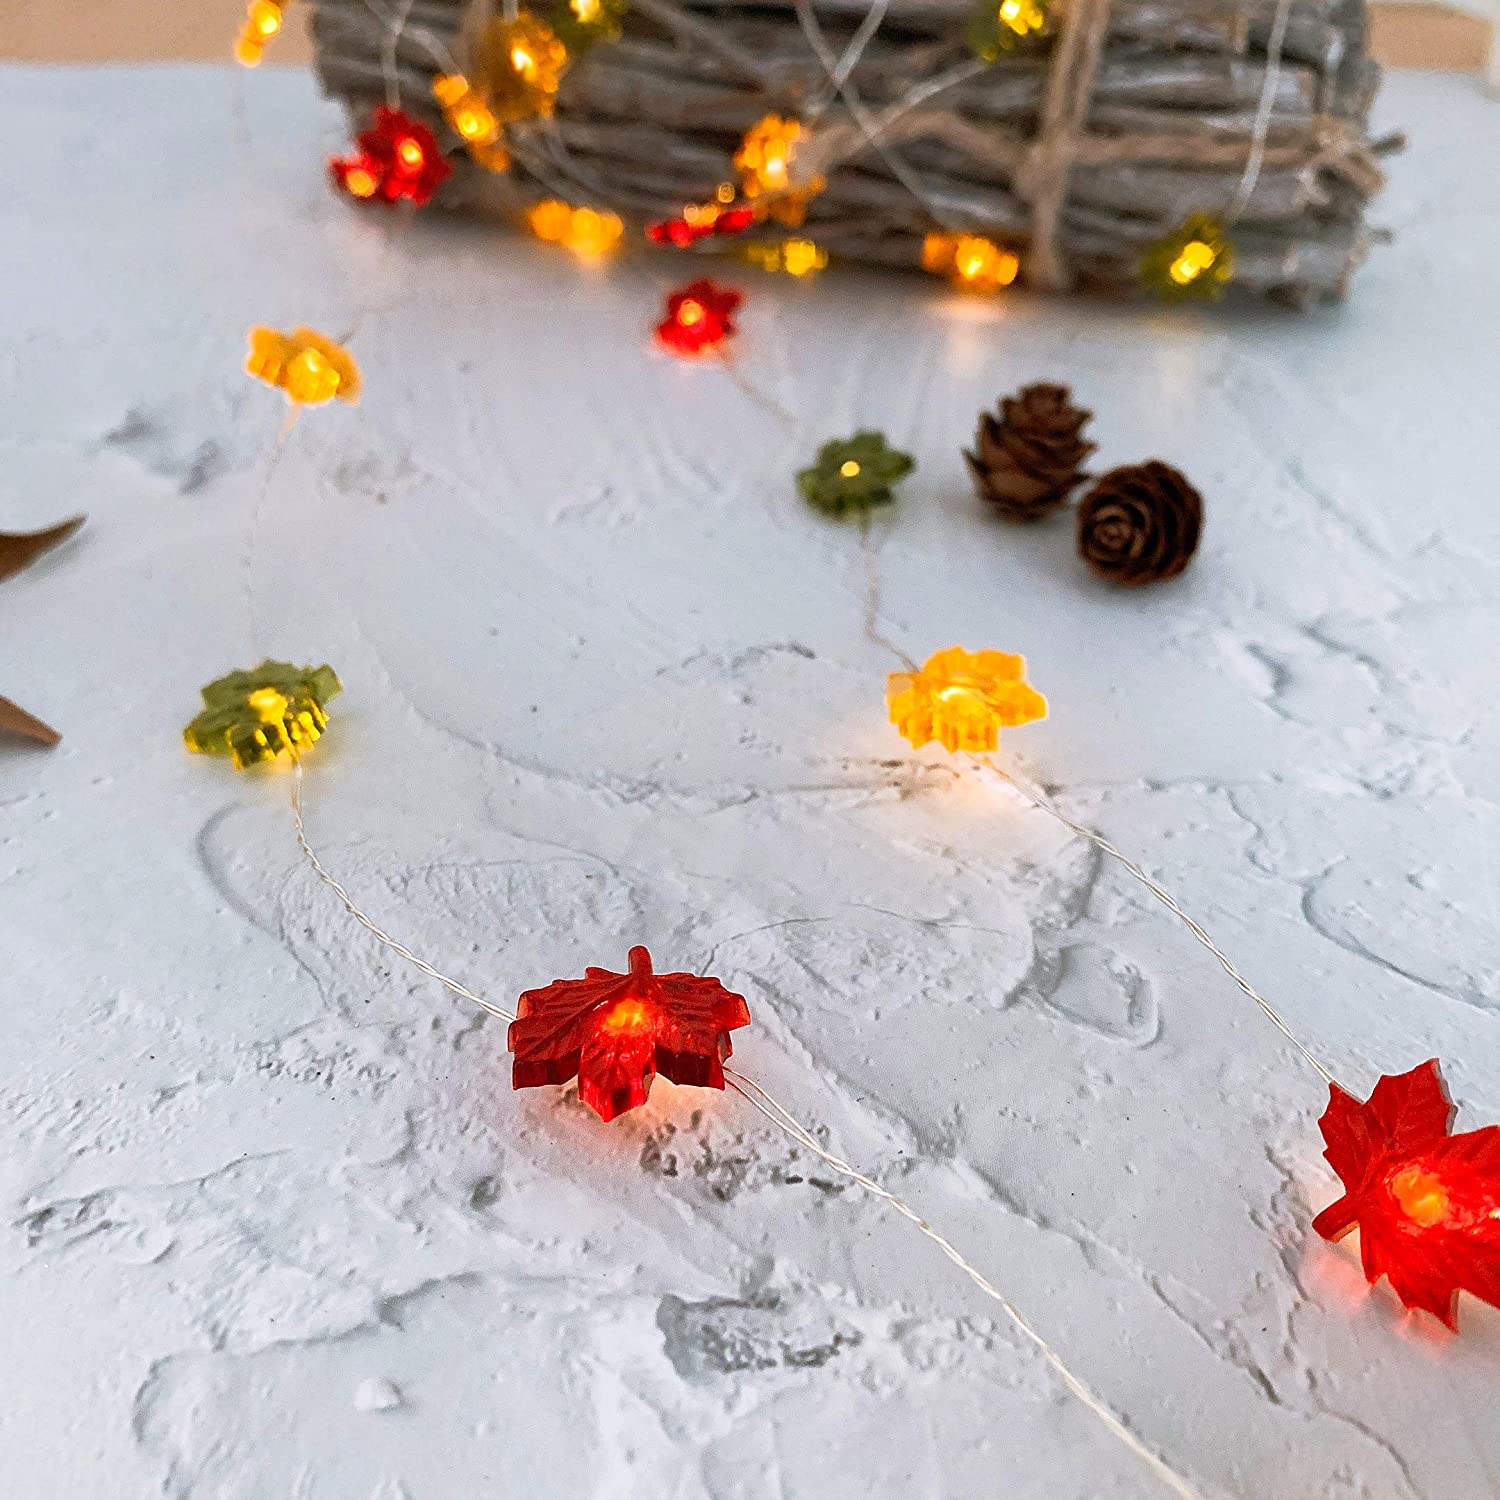 TAMOYO Maple Leaf String Lights, Thanksgiving Decoration Lights 10 FT 40 LED Battery Operated String Lights for Halloween, Autumn Theme Party, Thanksgiving Harvest Décor